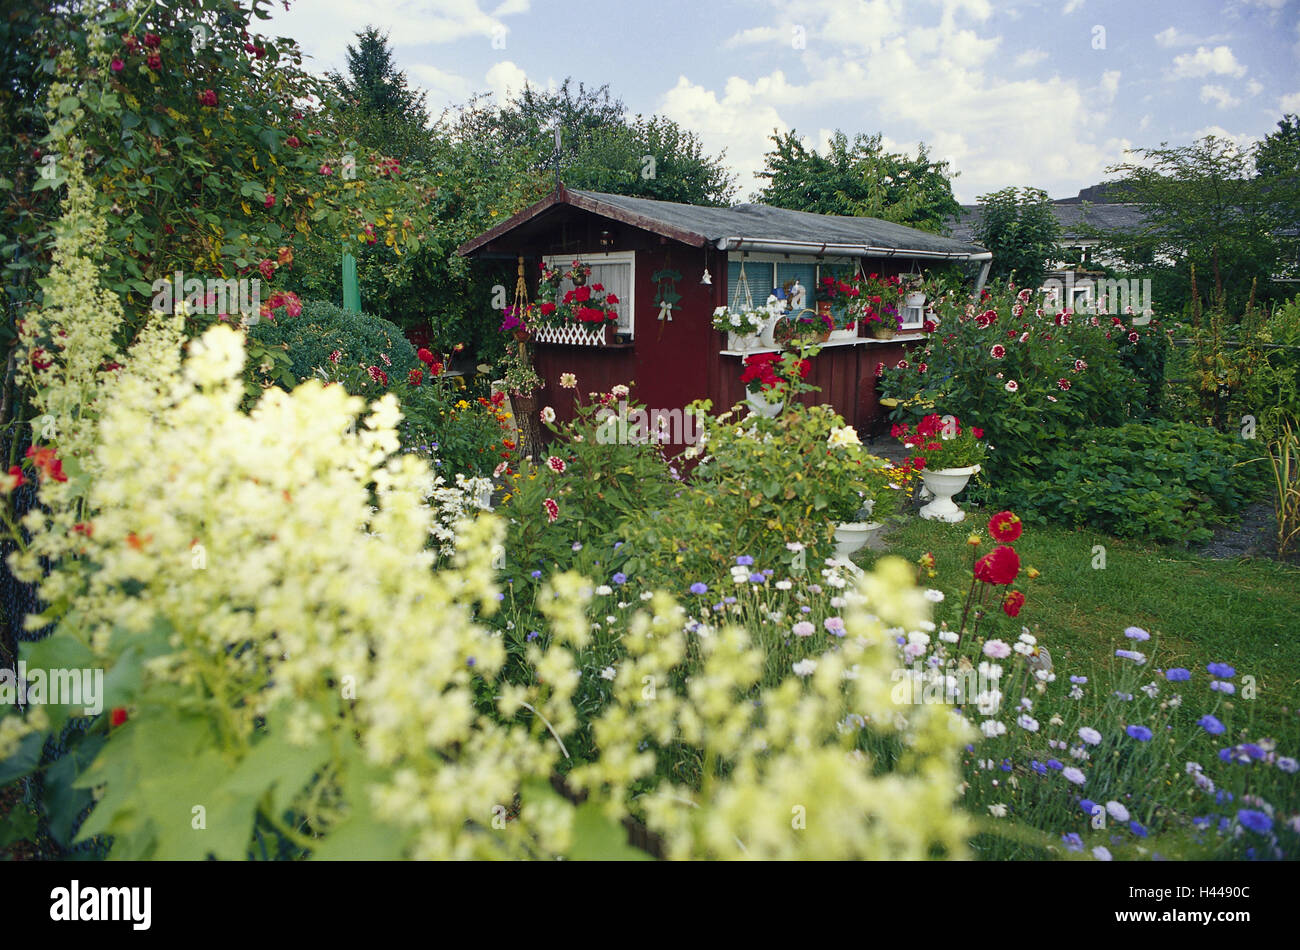 Small House Plants With Flowers Allotment Garden Garden Small House Flowers Blossom Idyll